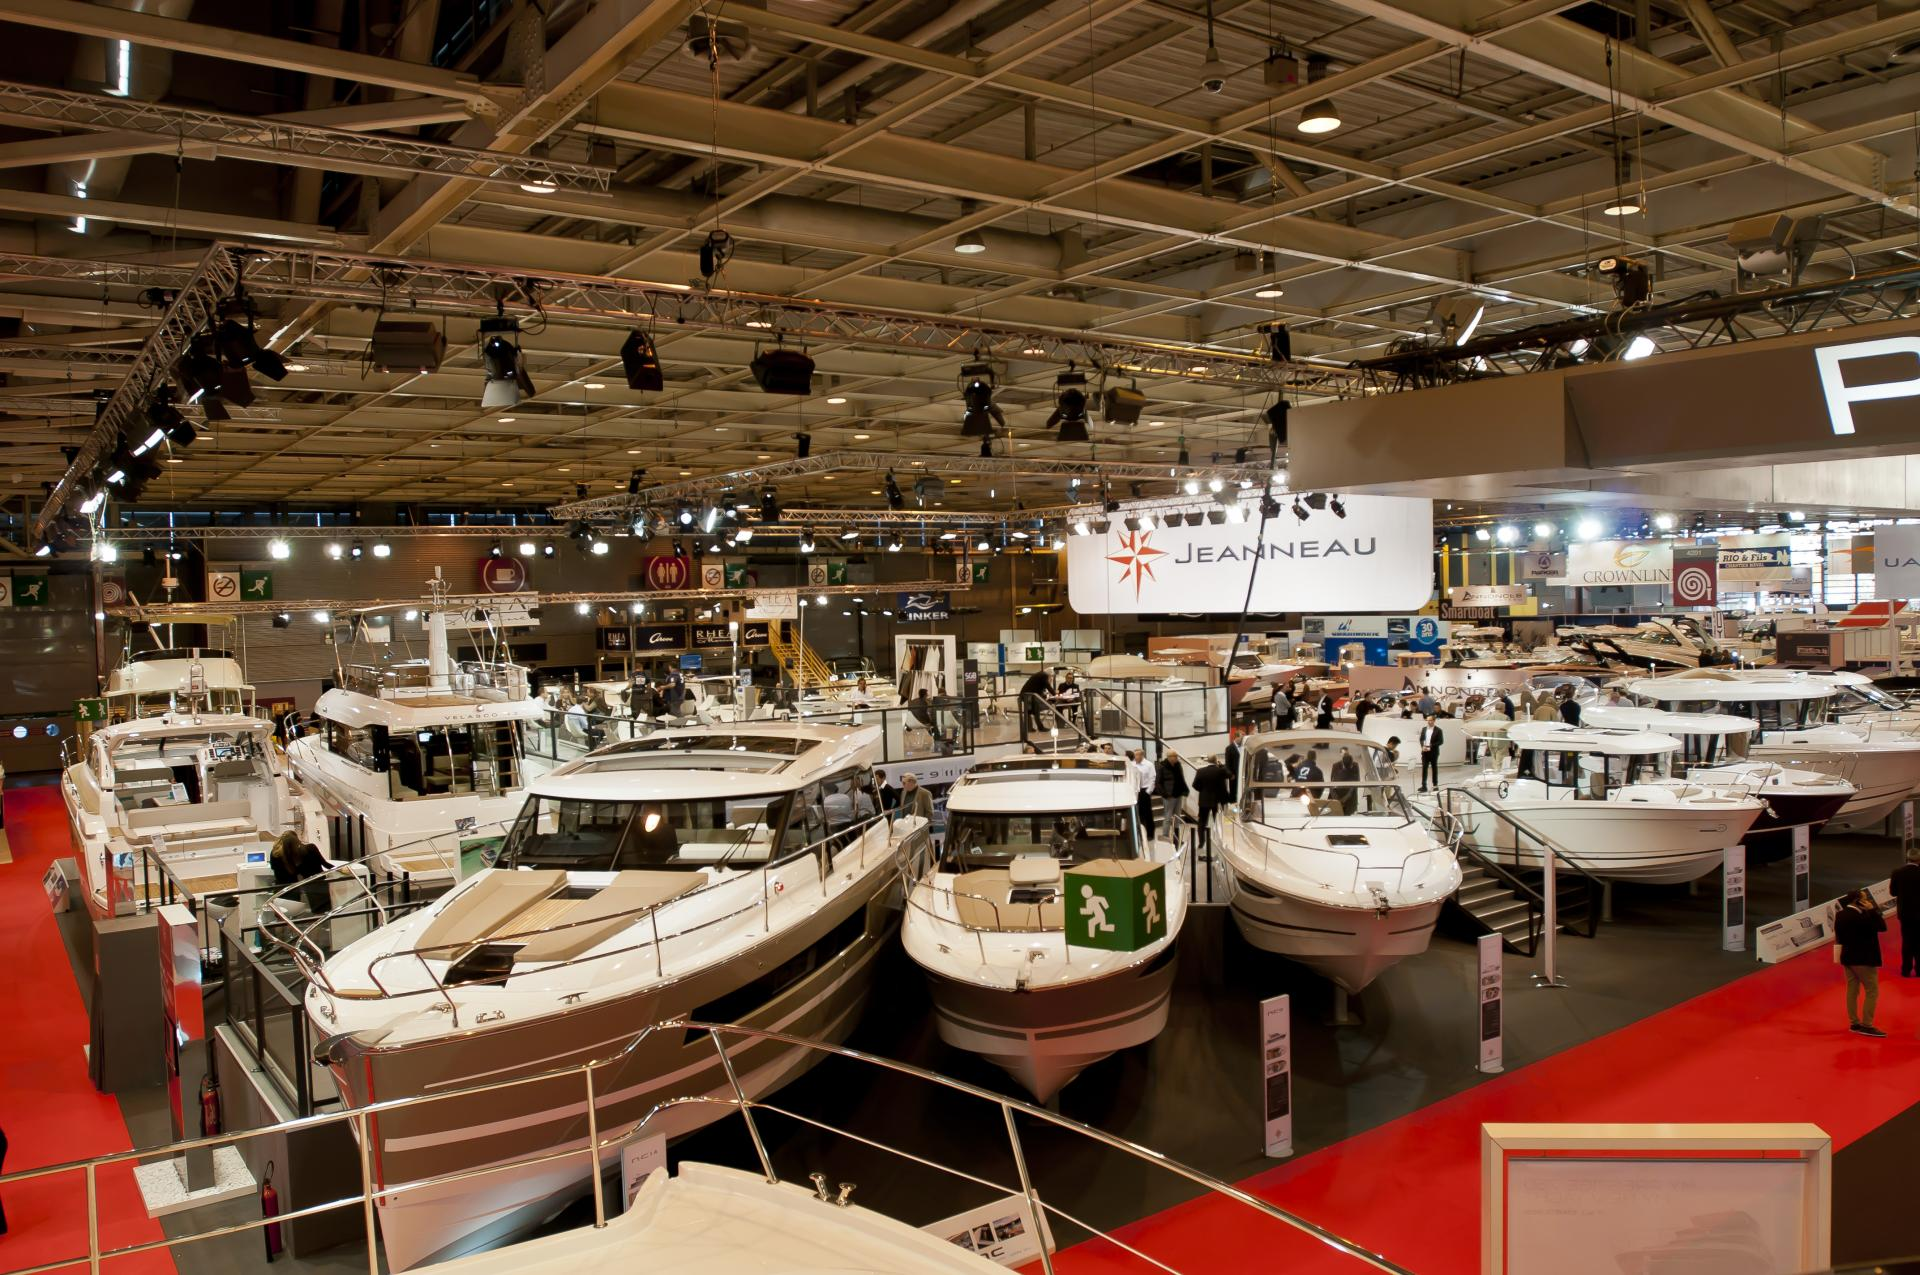 Bapt me du nouveau leader 40 au salon nautique de paris for Salons de paris